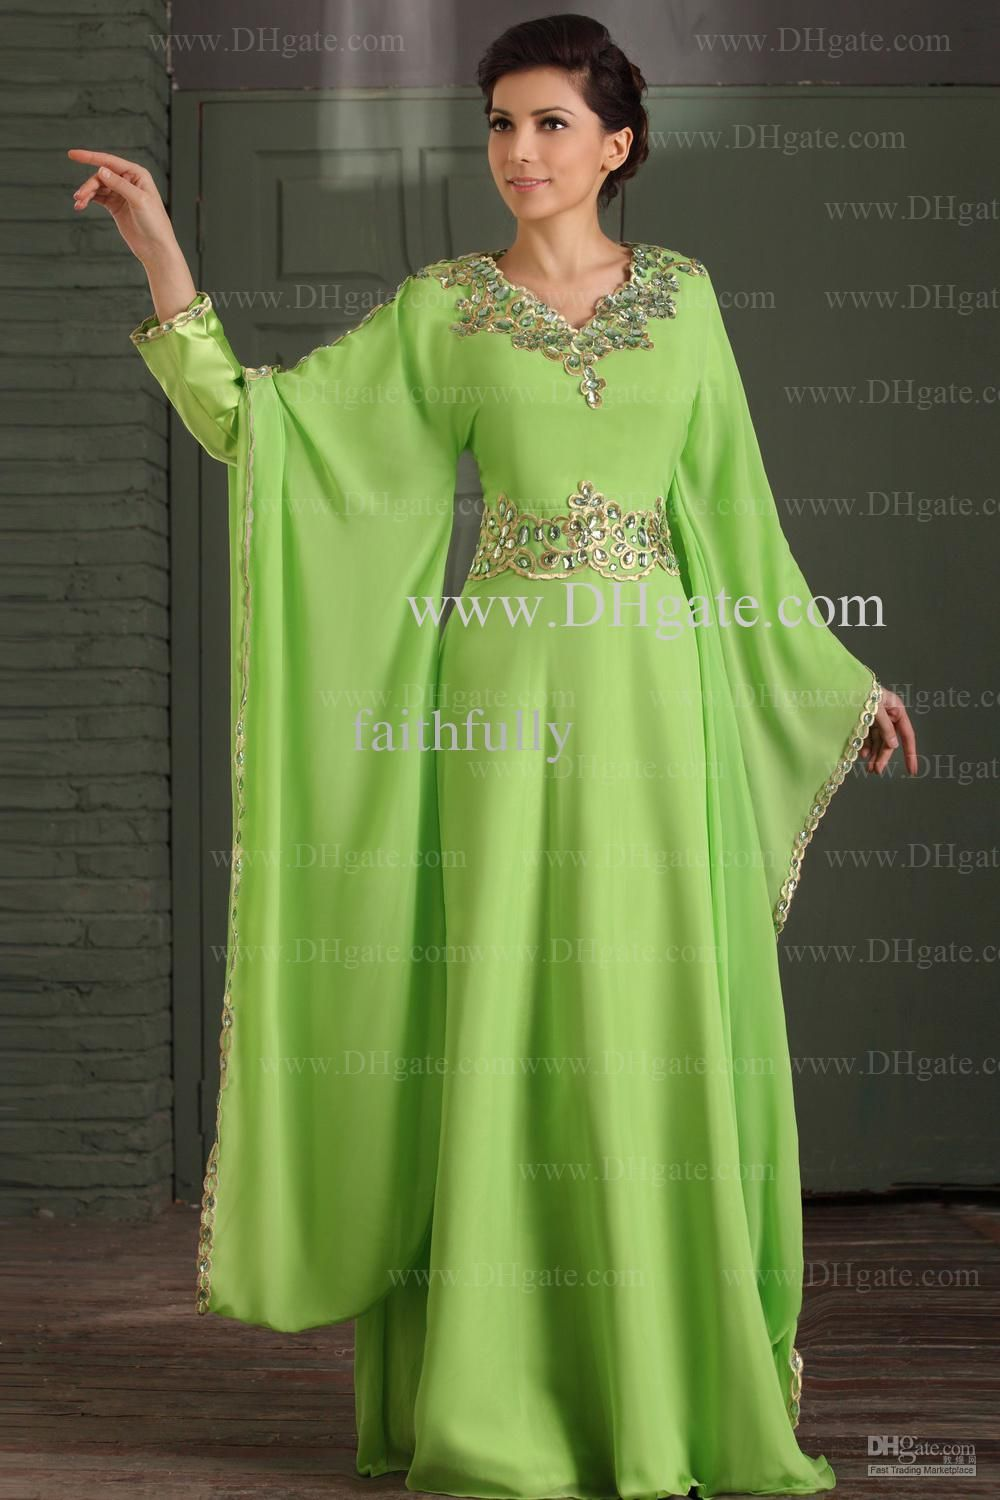 Wholesale Prom Dresses Buy Arabic Dubai Abaya Kaftan Green Greek